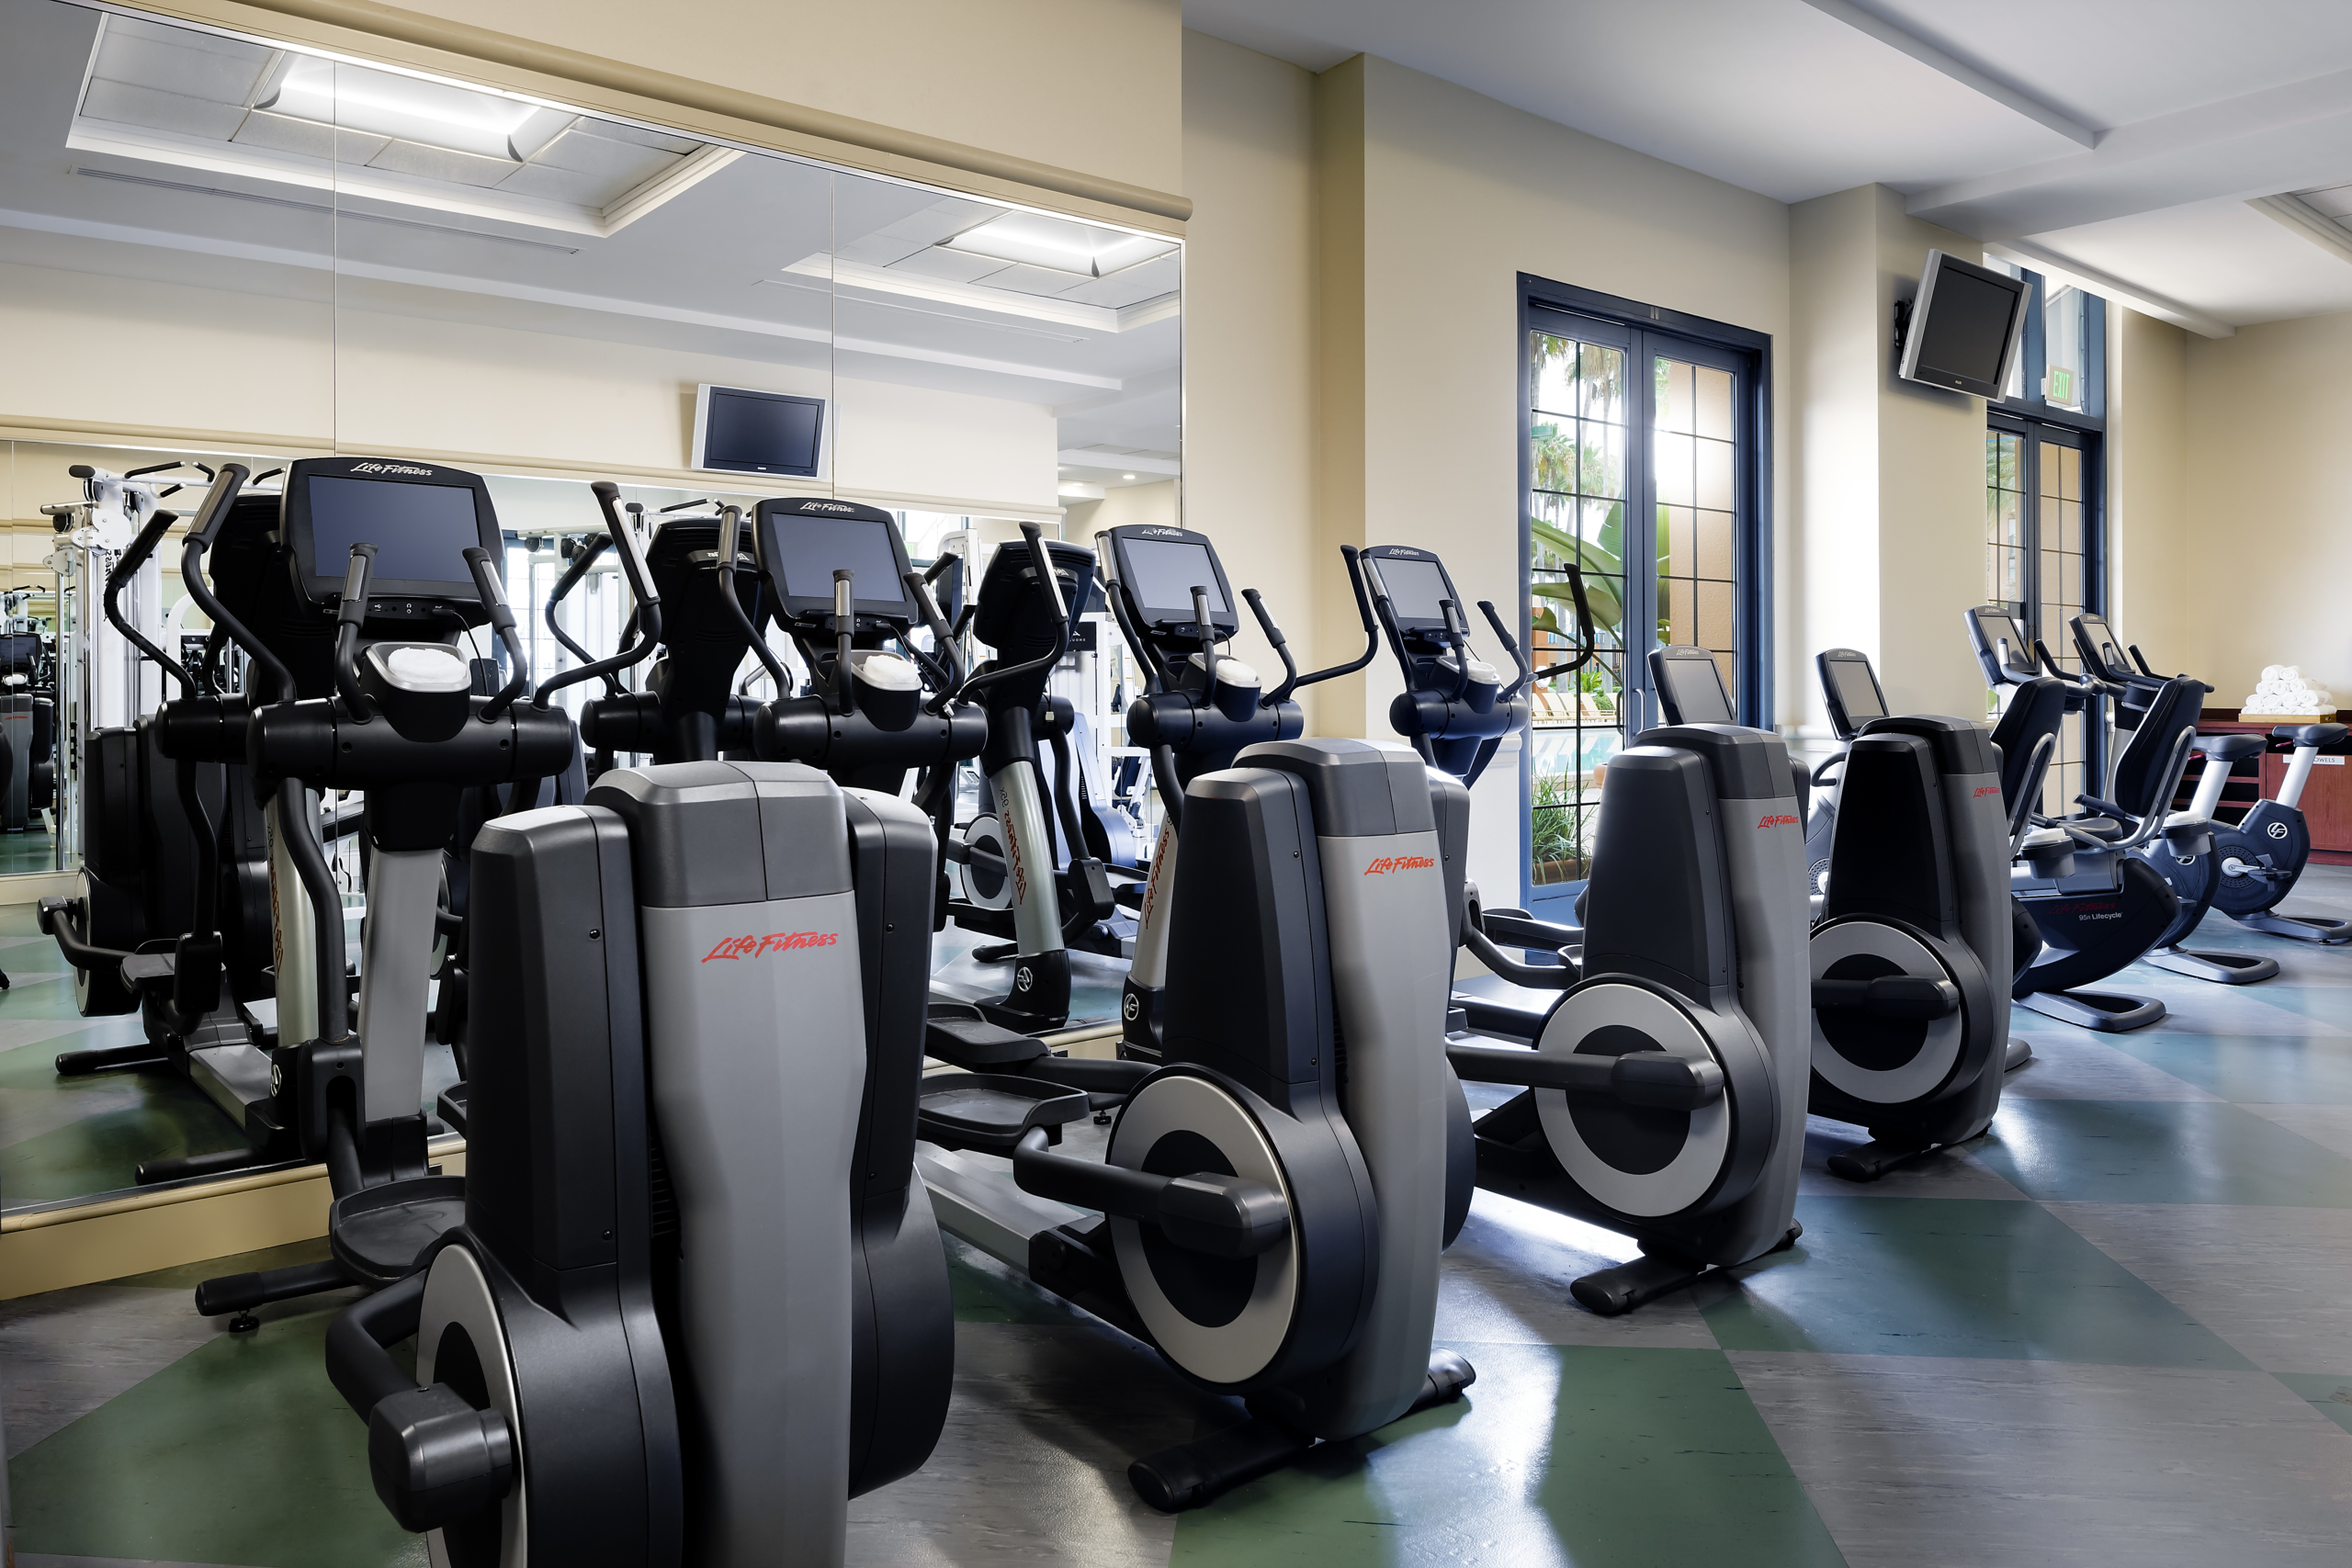 Exercise machines in the Swan health club.